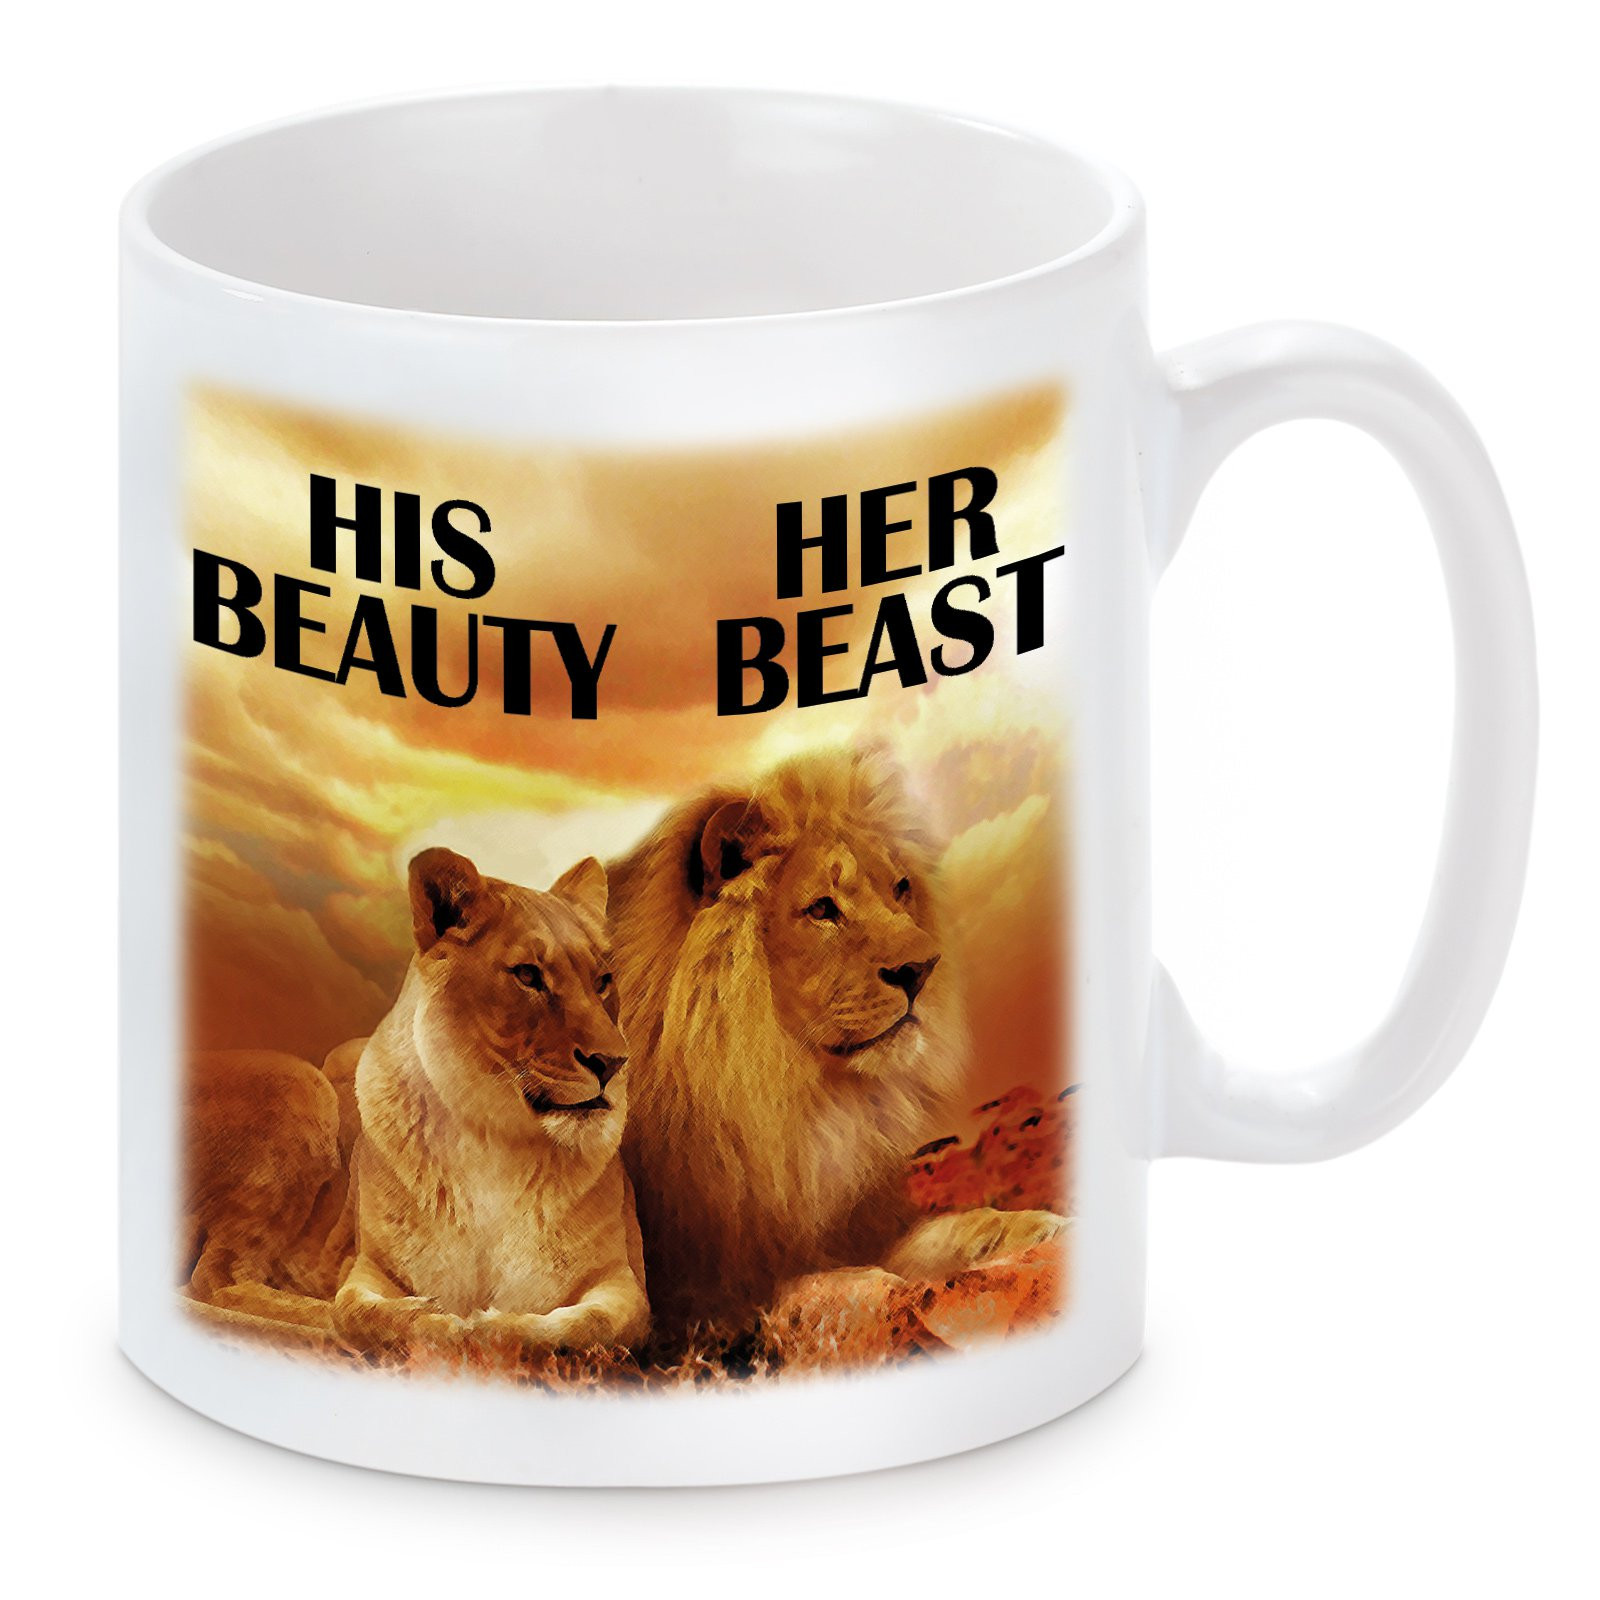 Tasse Modell: His Beauty - Her Beast